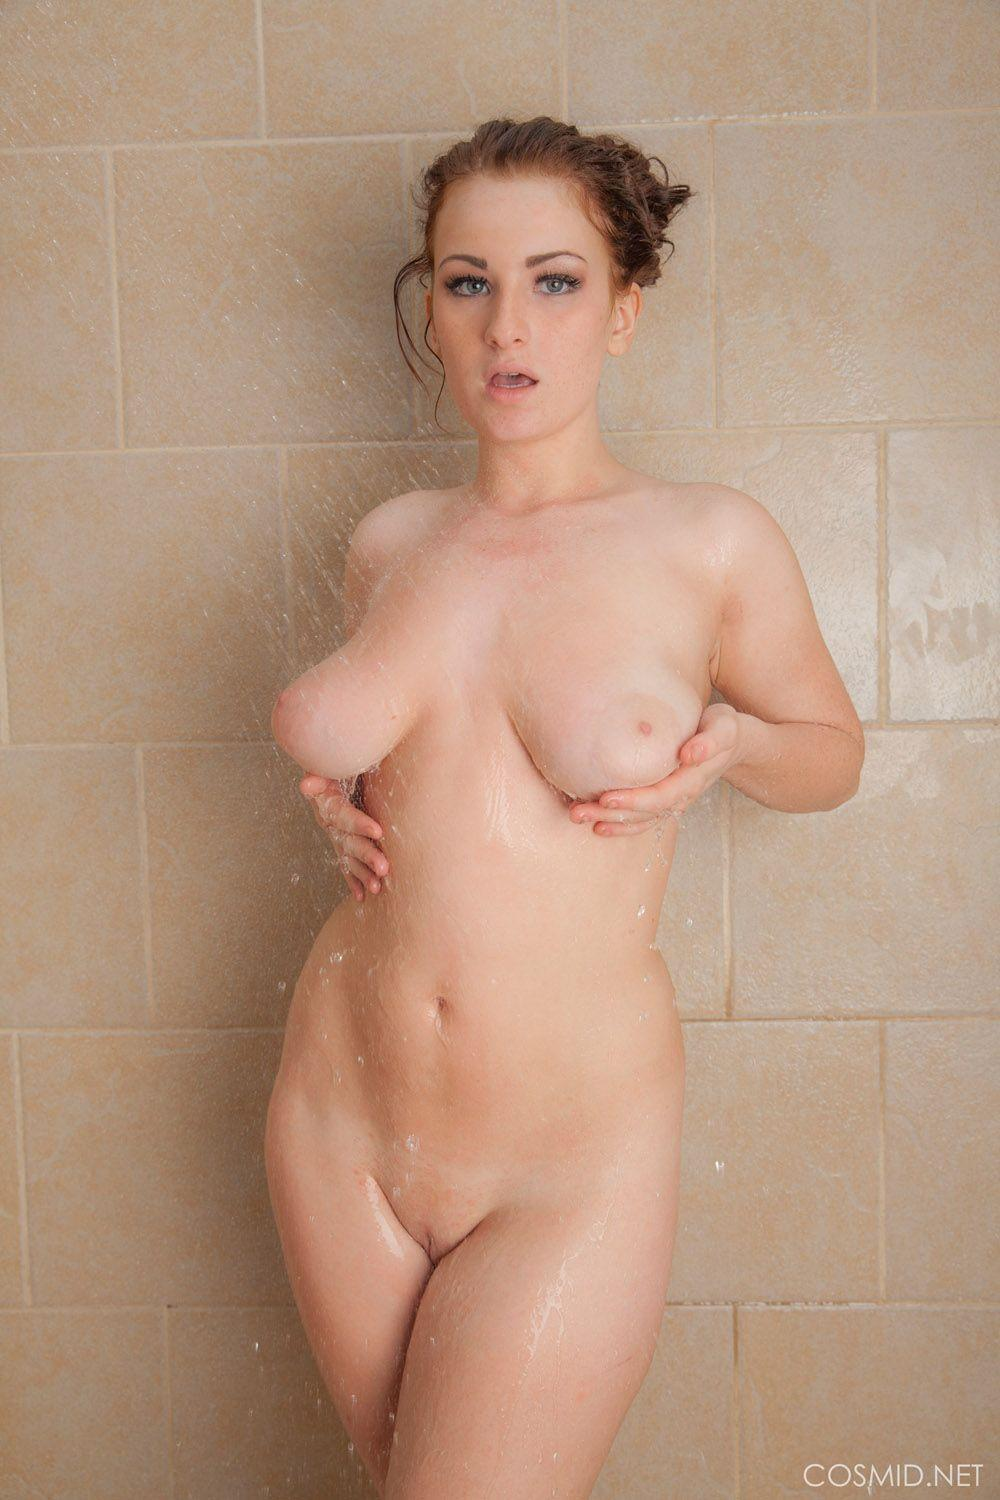 Shower nude galleries